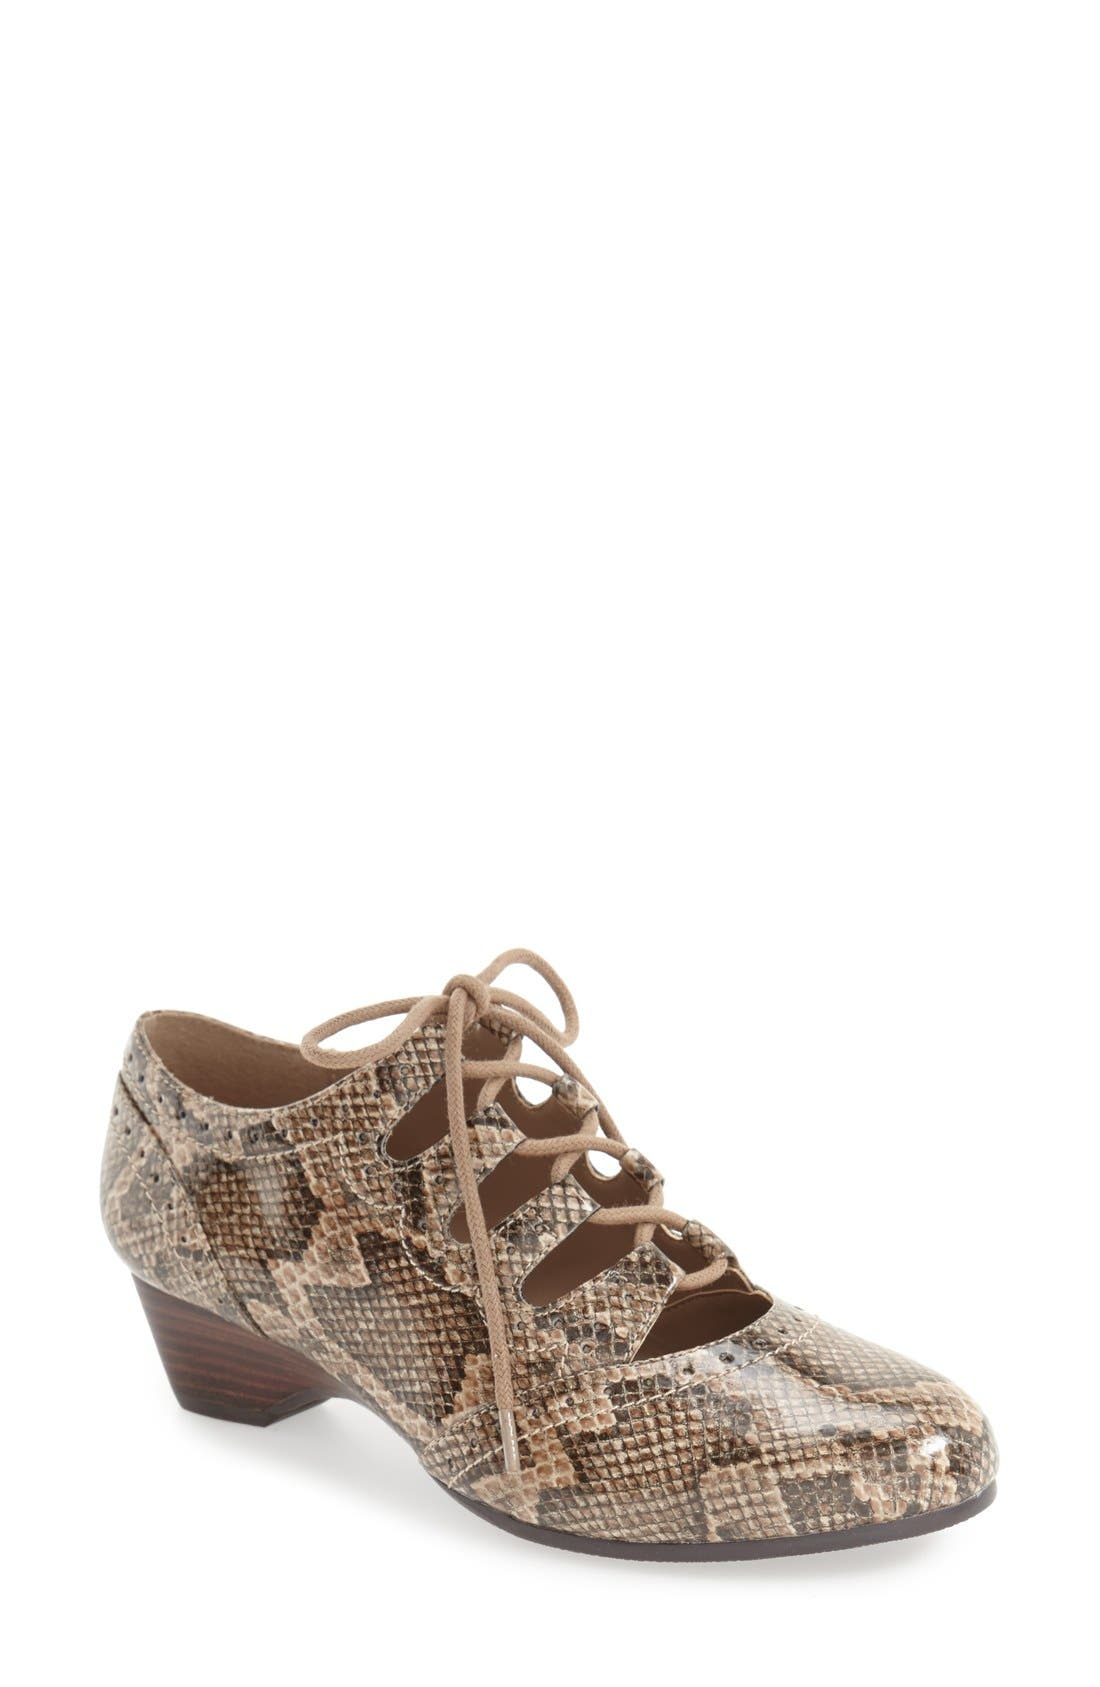 Alternate Image 1 Selected - Bella Vita Posie Ghillie Oxford (Women)